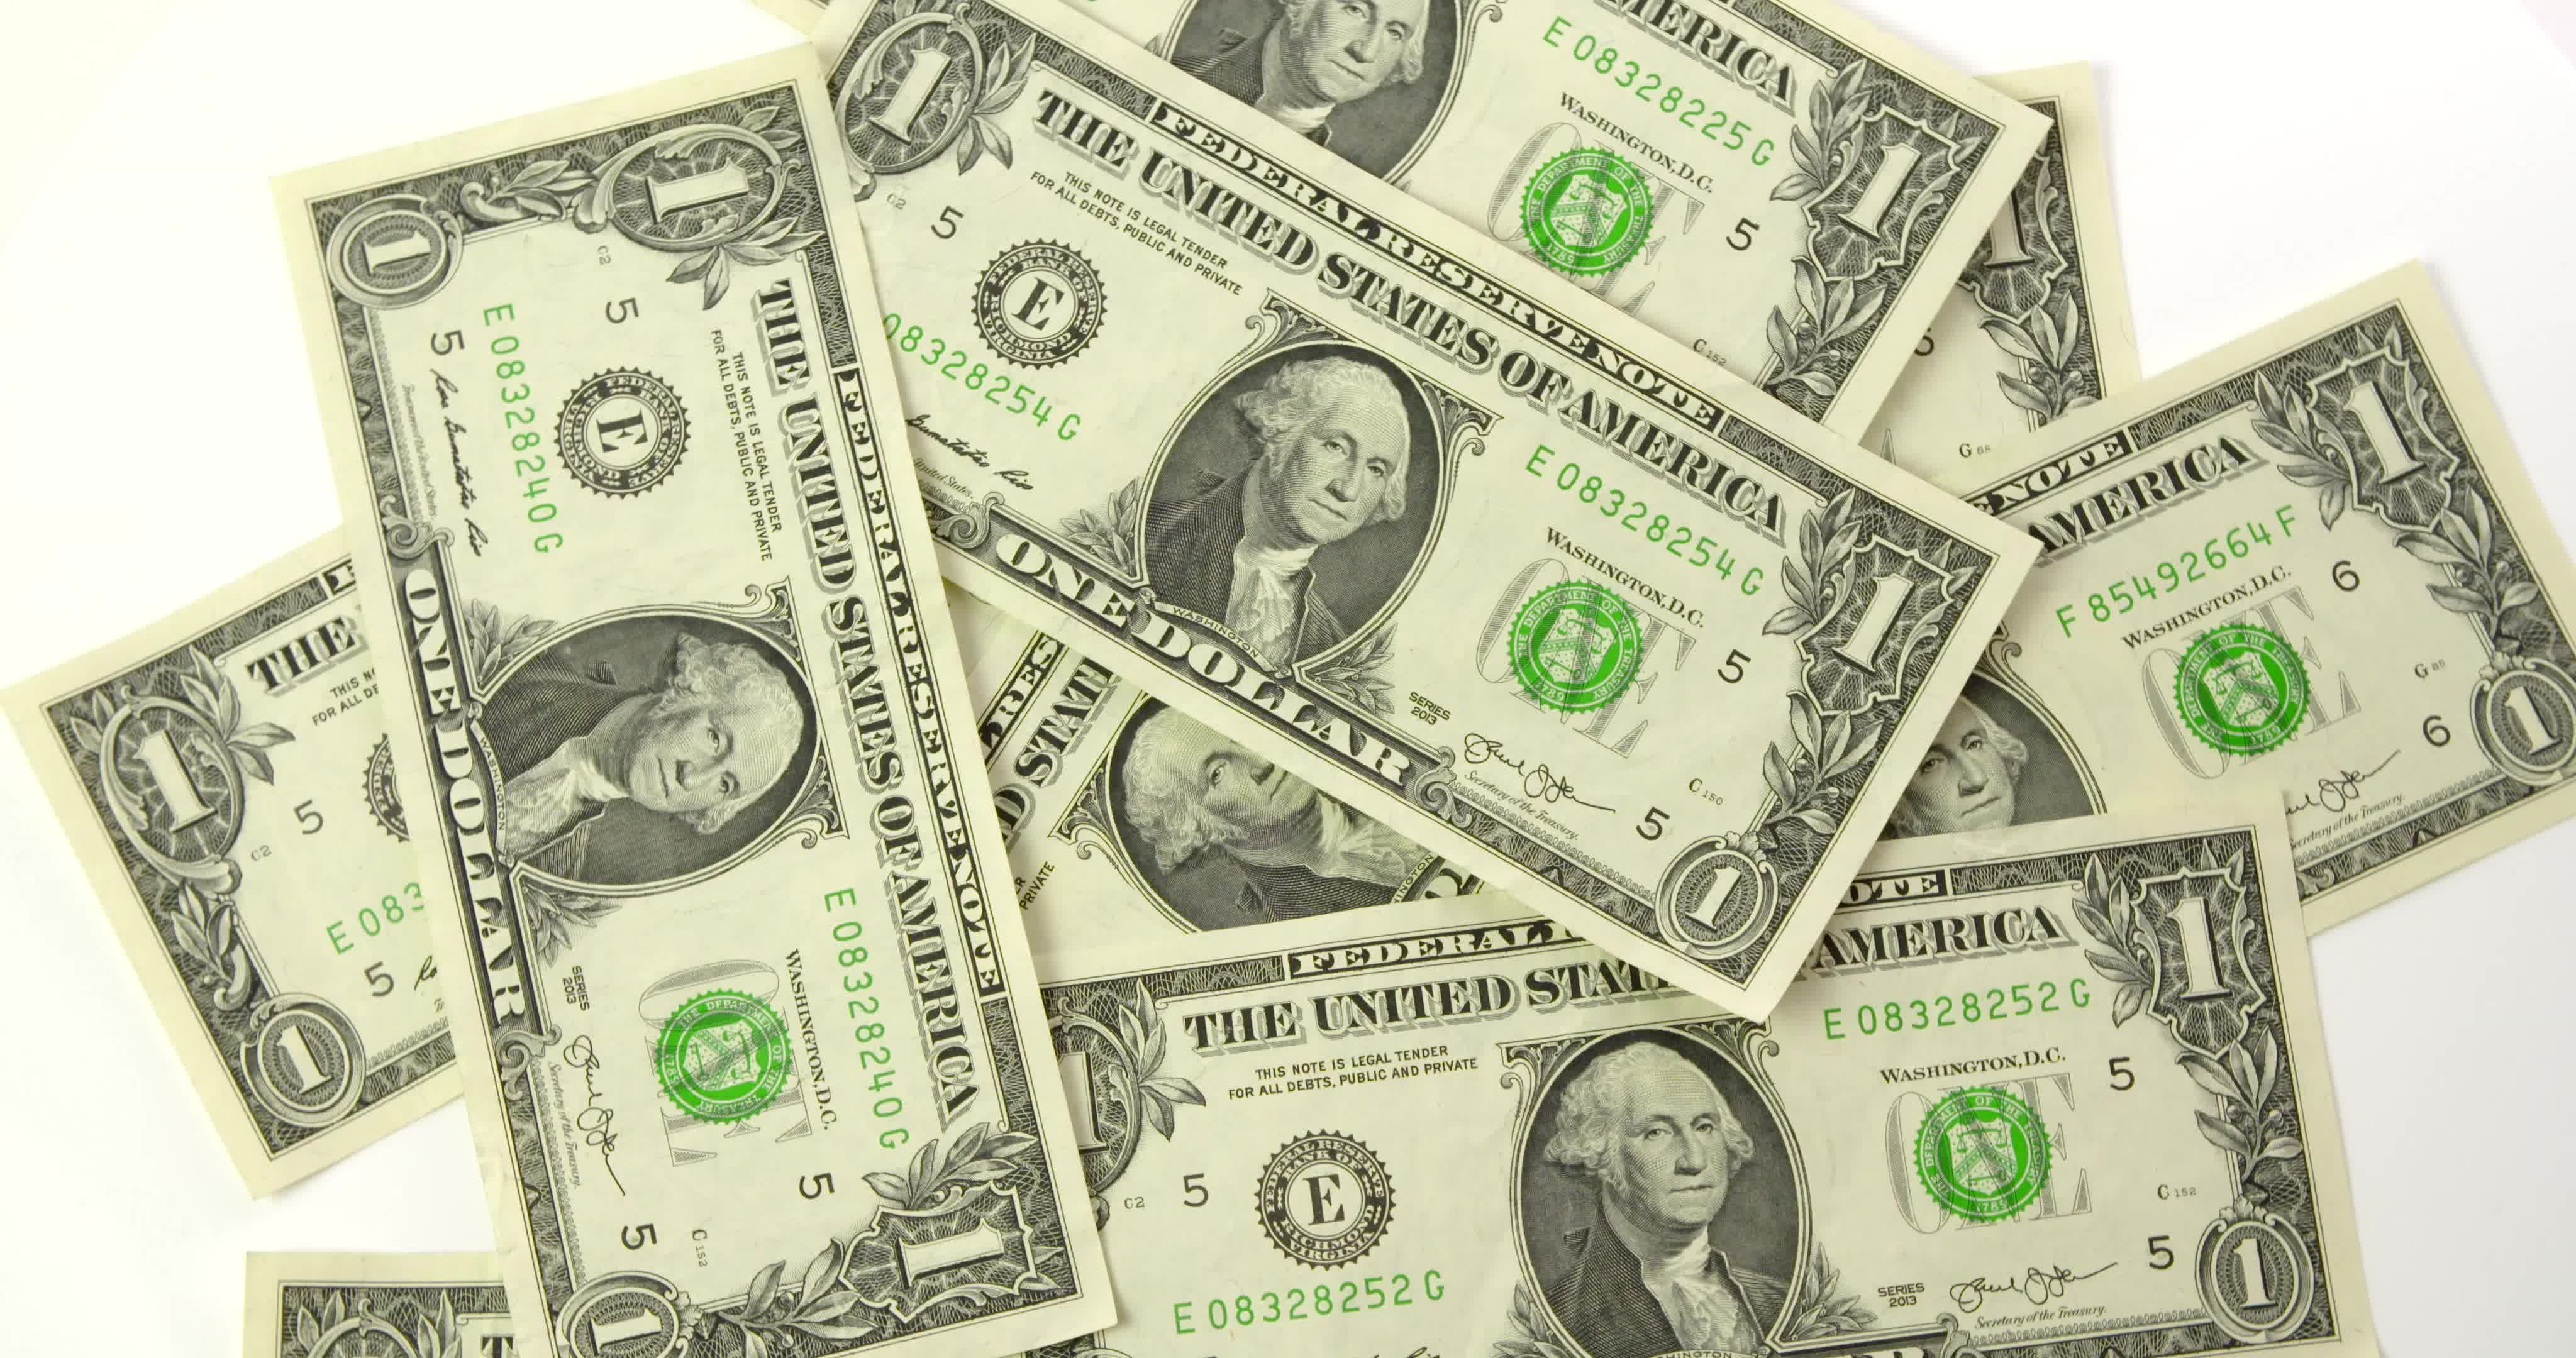 Buy high quality counterfeit money online with images